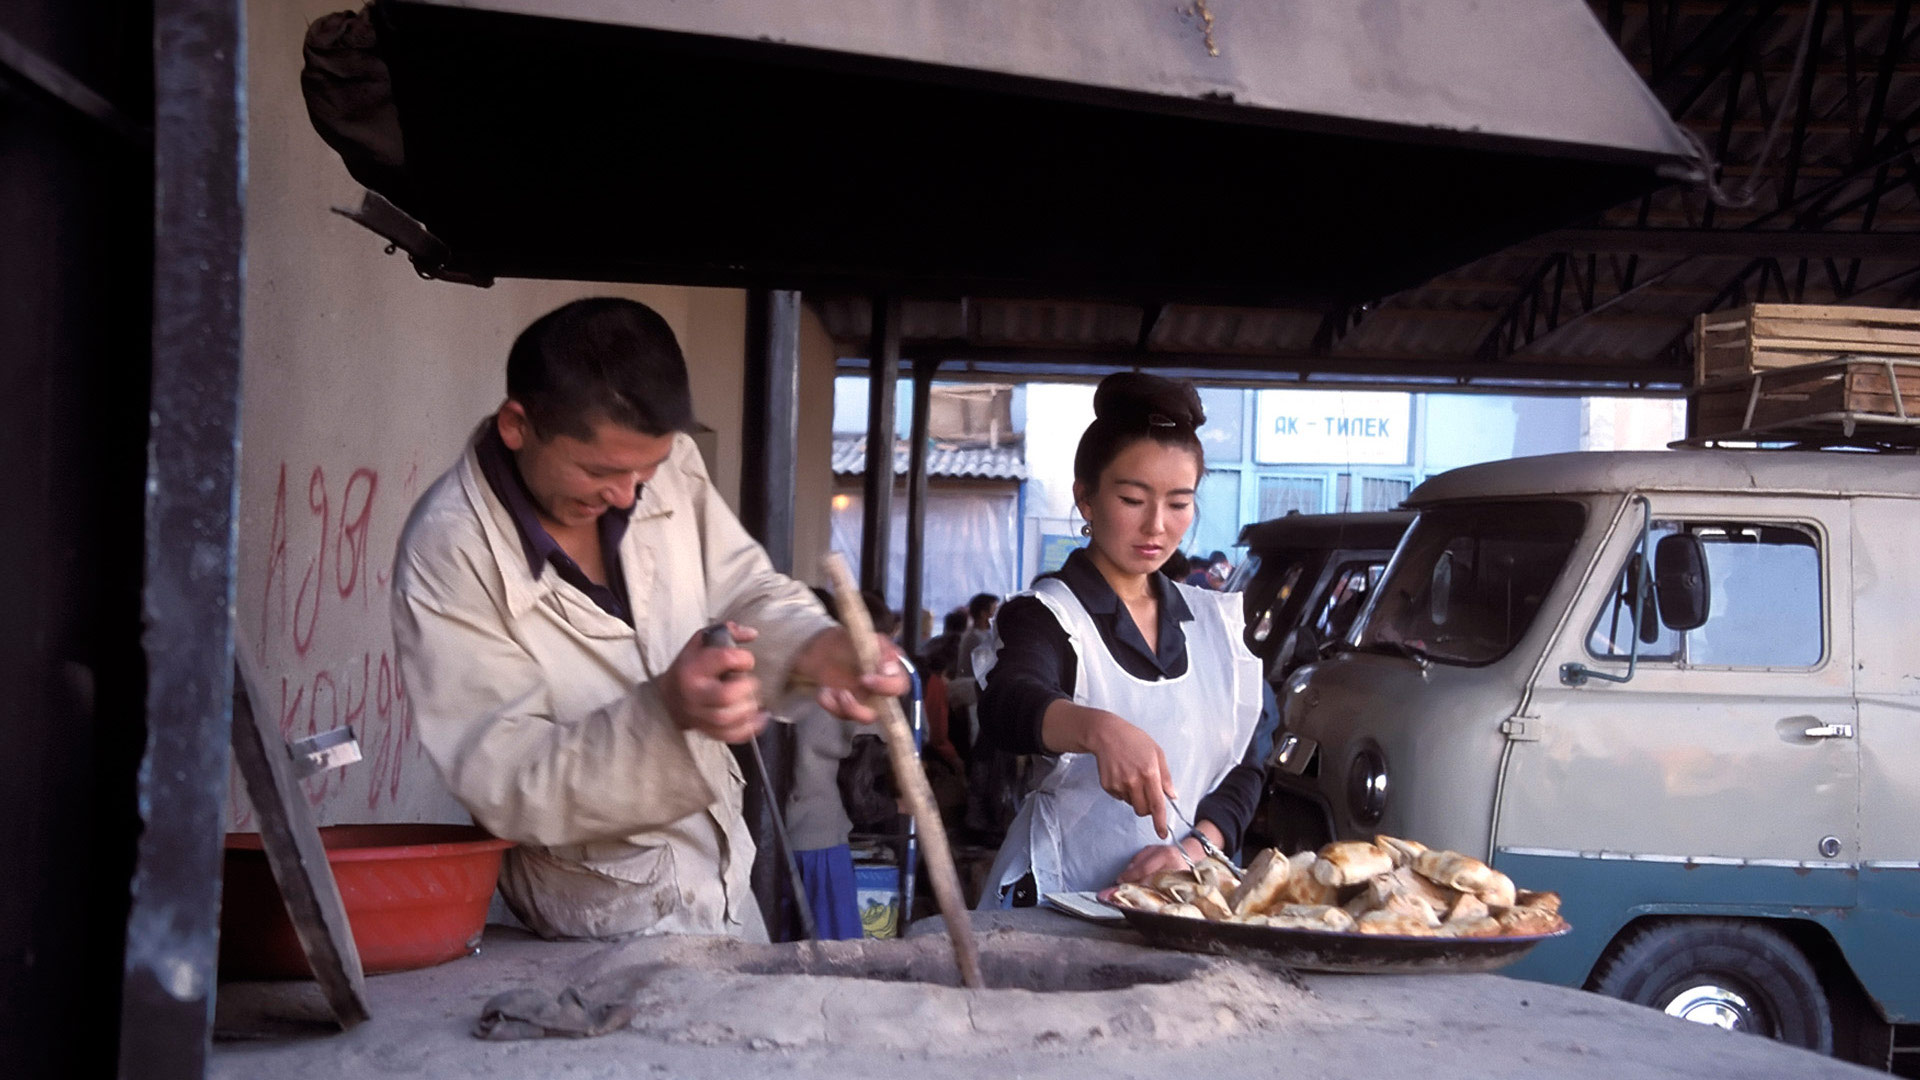 Man and woman making meat pies at a bazaar, Kyrgyzstan